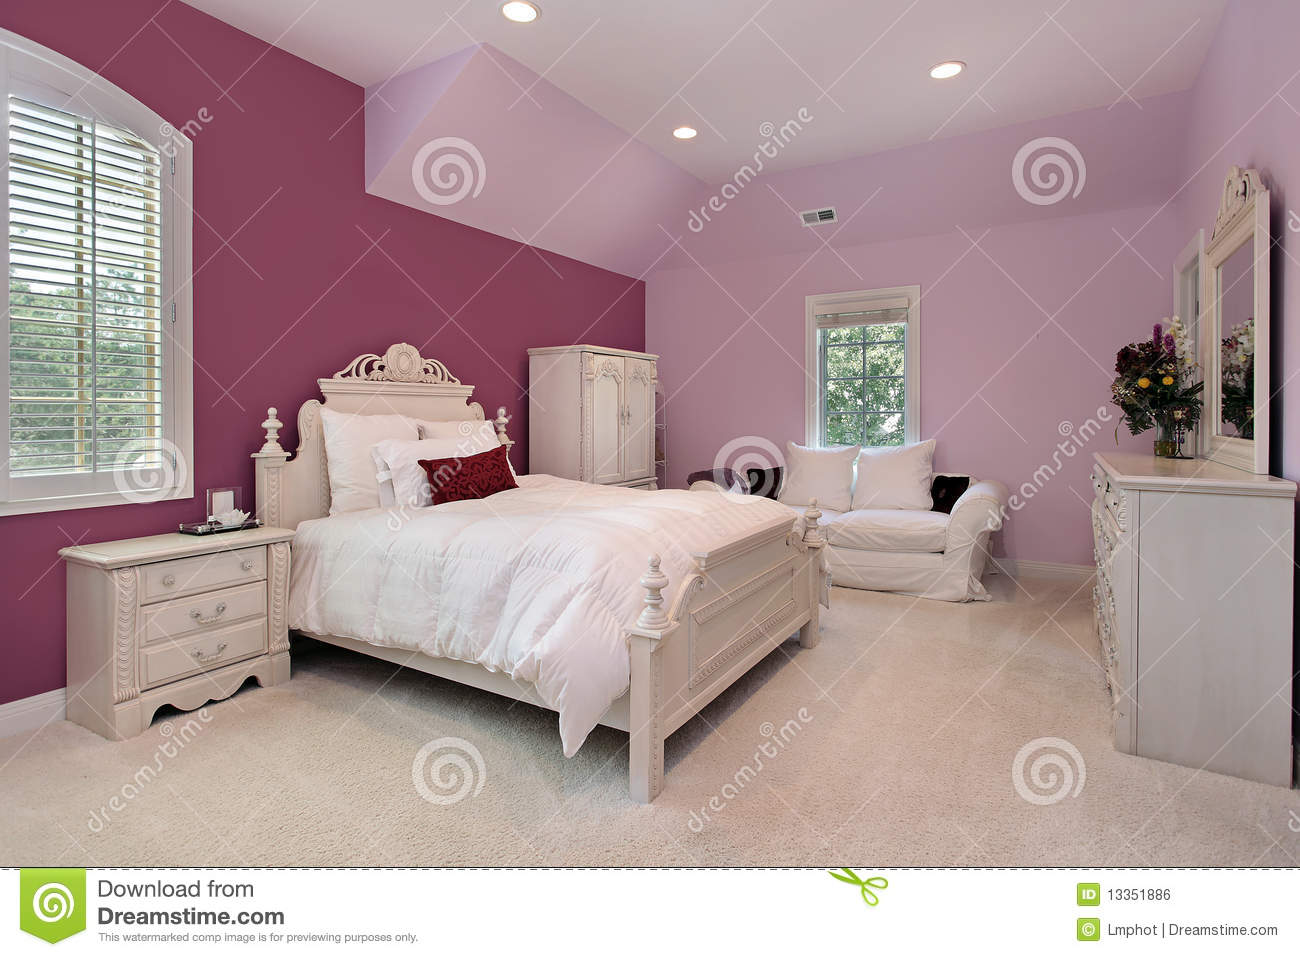 la chambre coucher rose de la fille dans la maison de luxe image libre de droits image 13351886. Black Bedroom Furniture Sets. Home Design Ideas